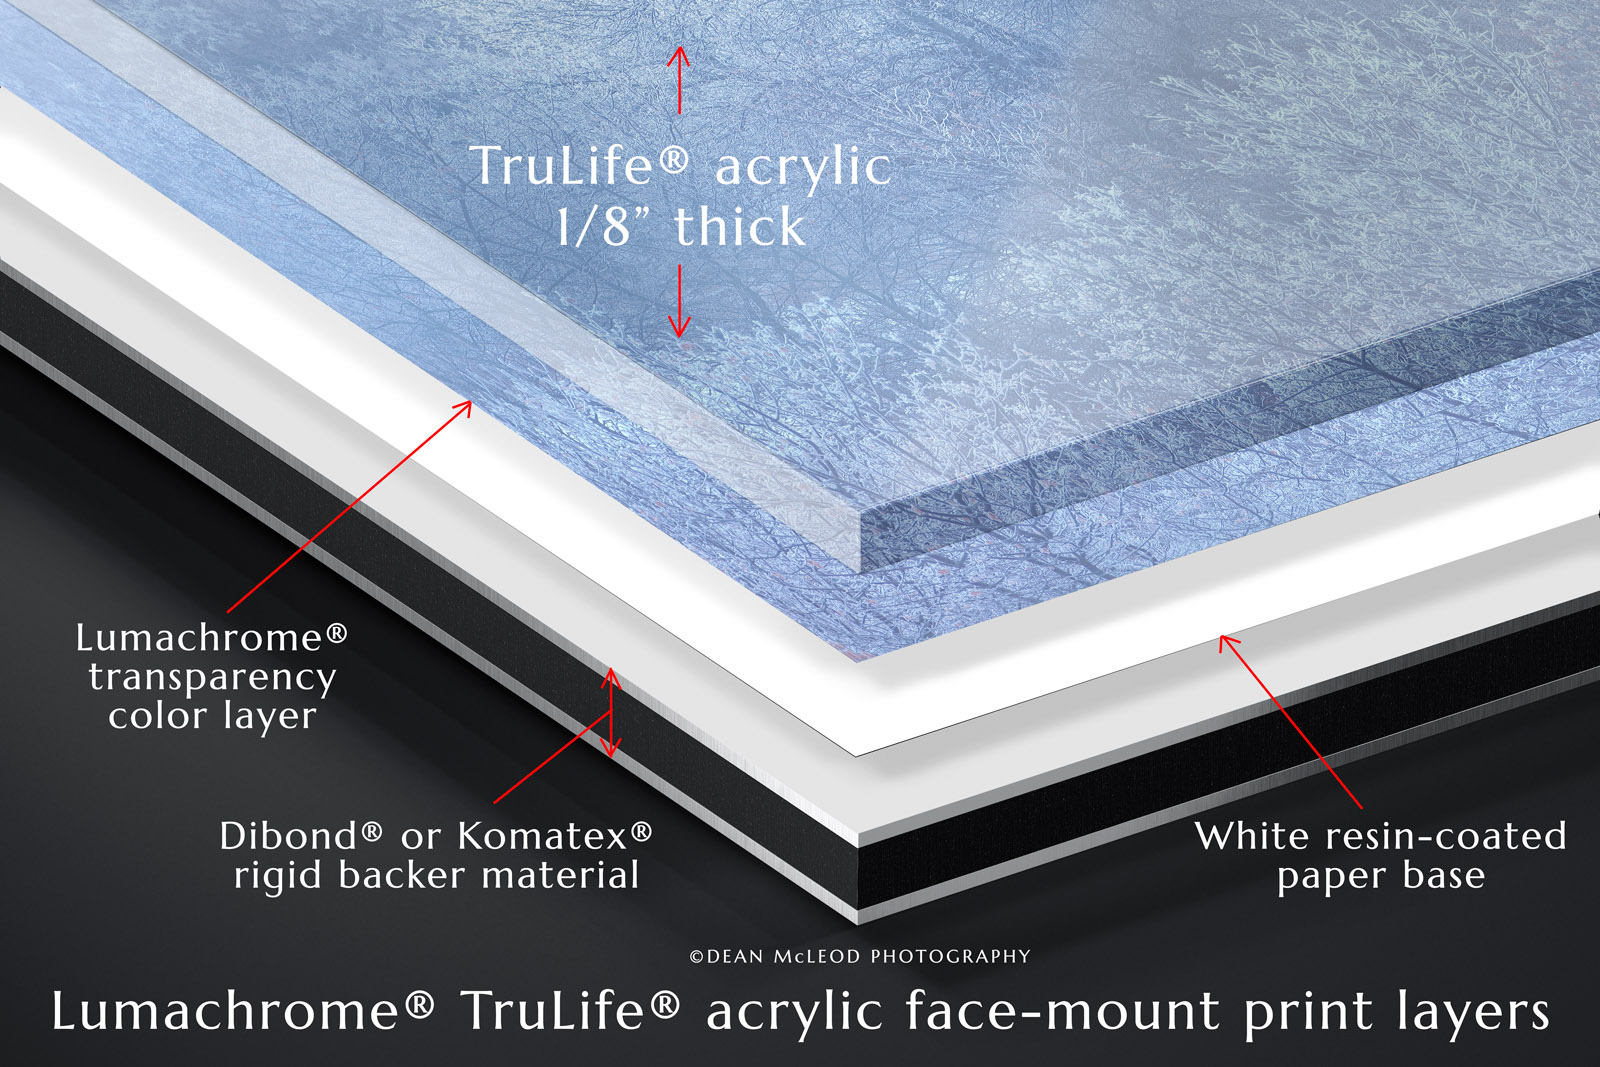 Diagram illustrating the layers of a Lumachrome TruLife acrylic face-mount photographic print.